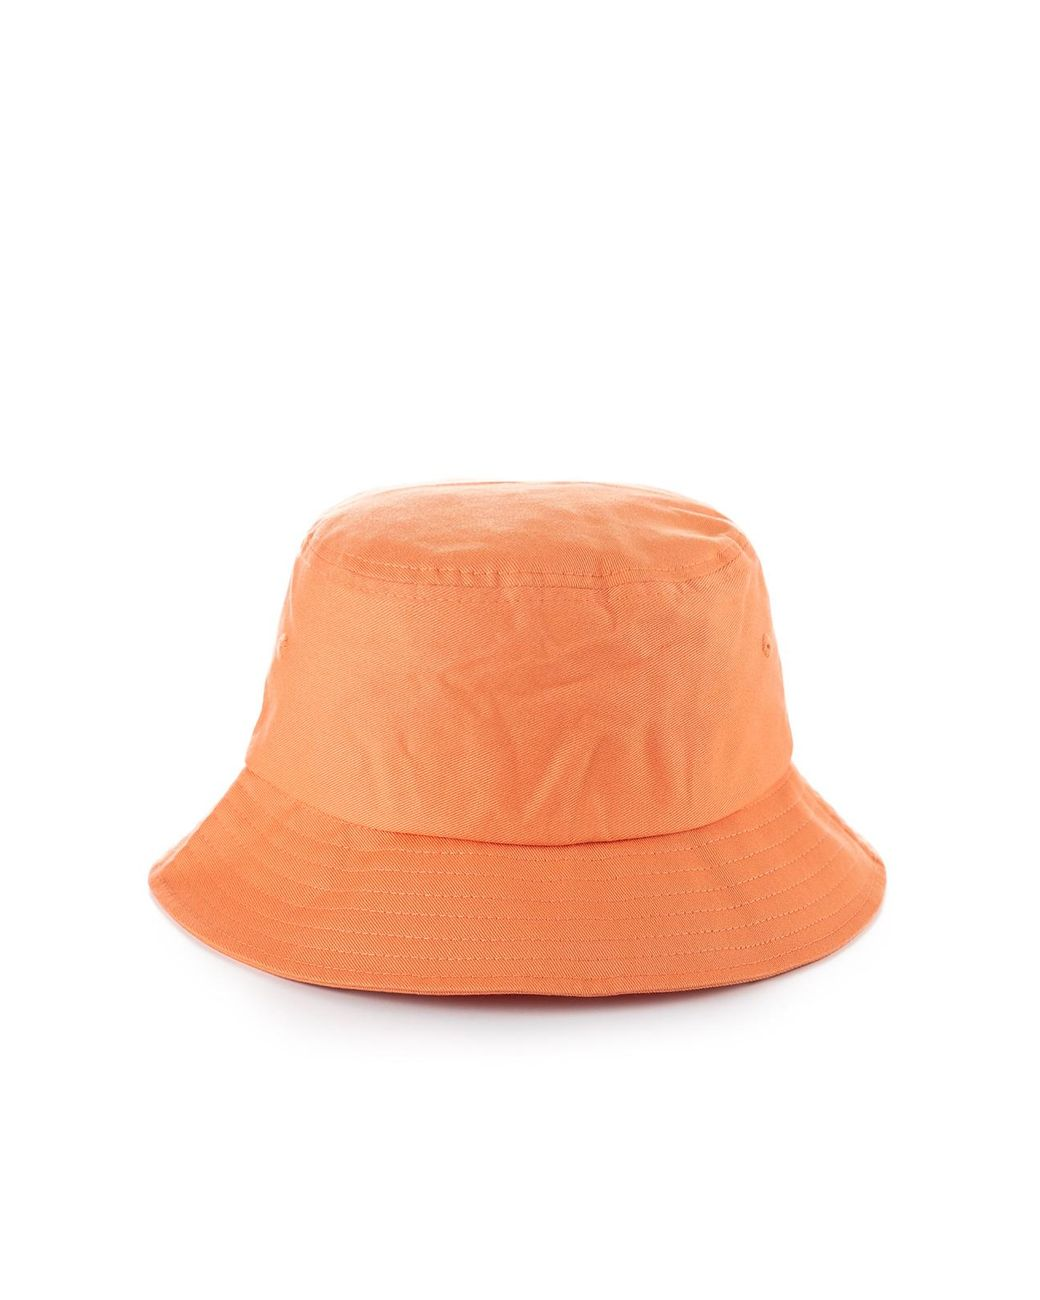 3f5a5c1a30516 Stussy Stock Bucket Hat Peach in Orange for Men - Save 5% - Lyst